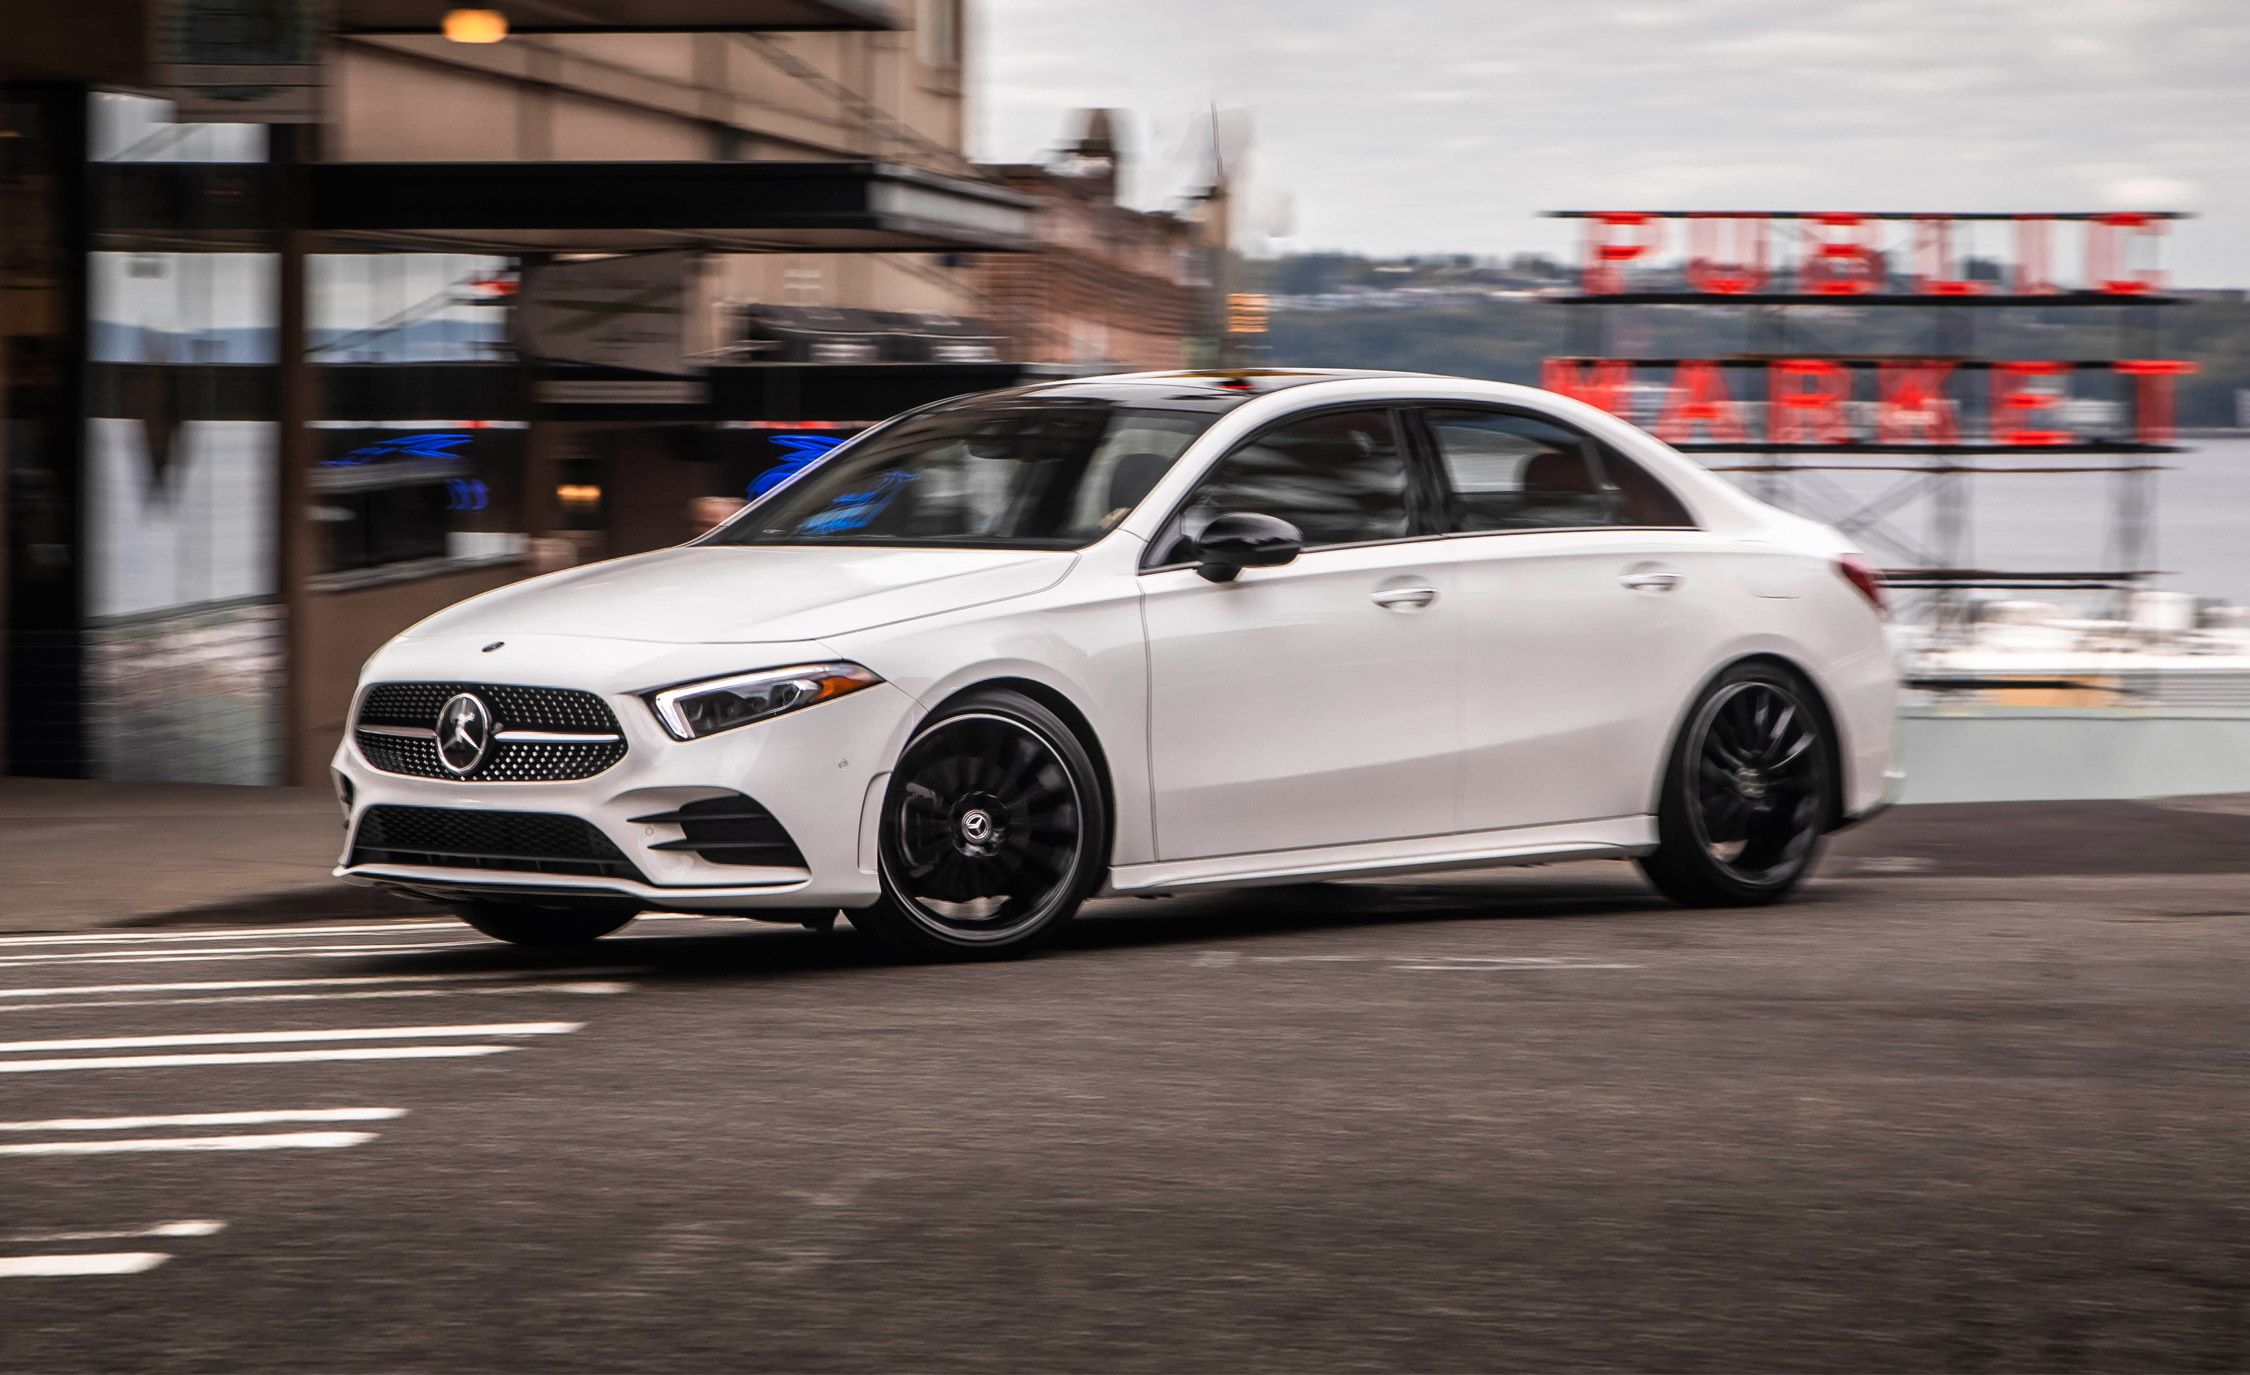 Lovely The 2019 Mercedes Benz A Class Sedan Is A Worthy Luxury Entry Point